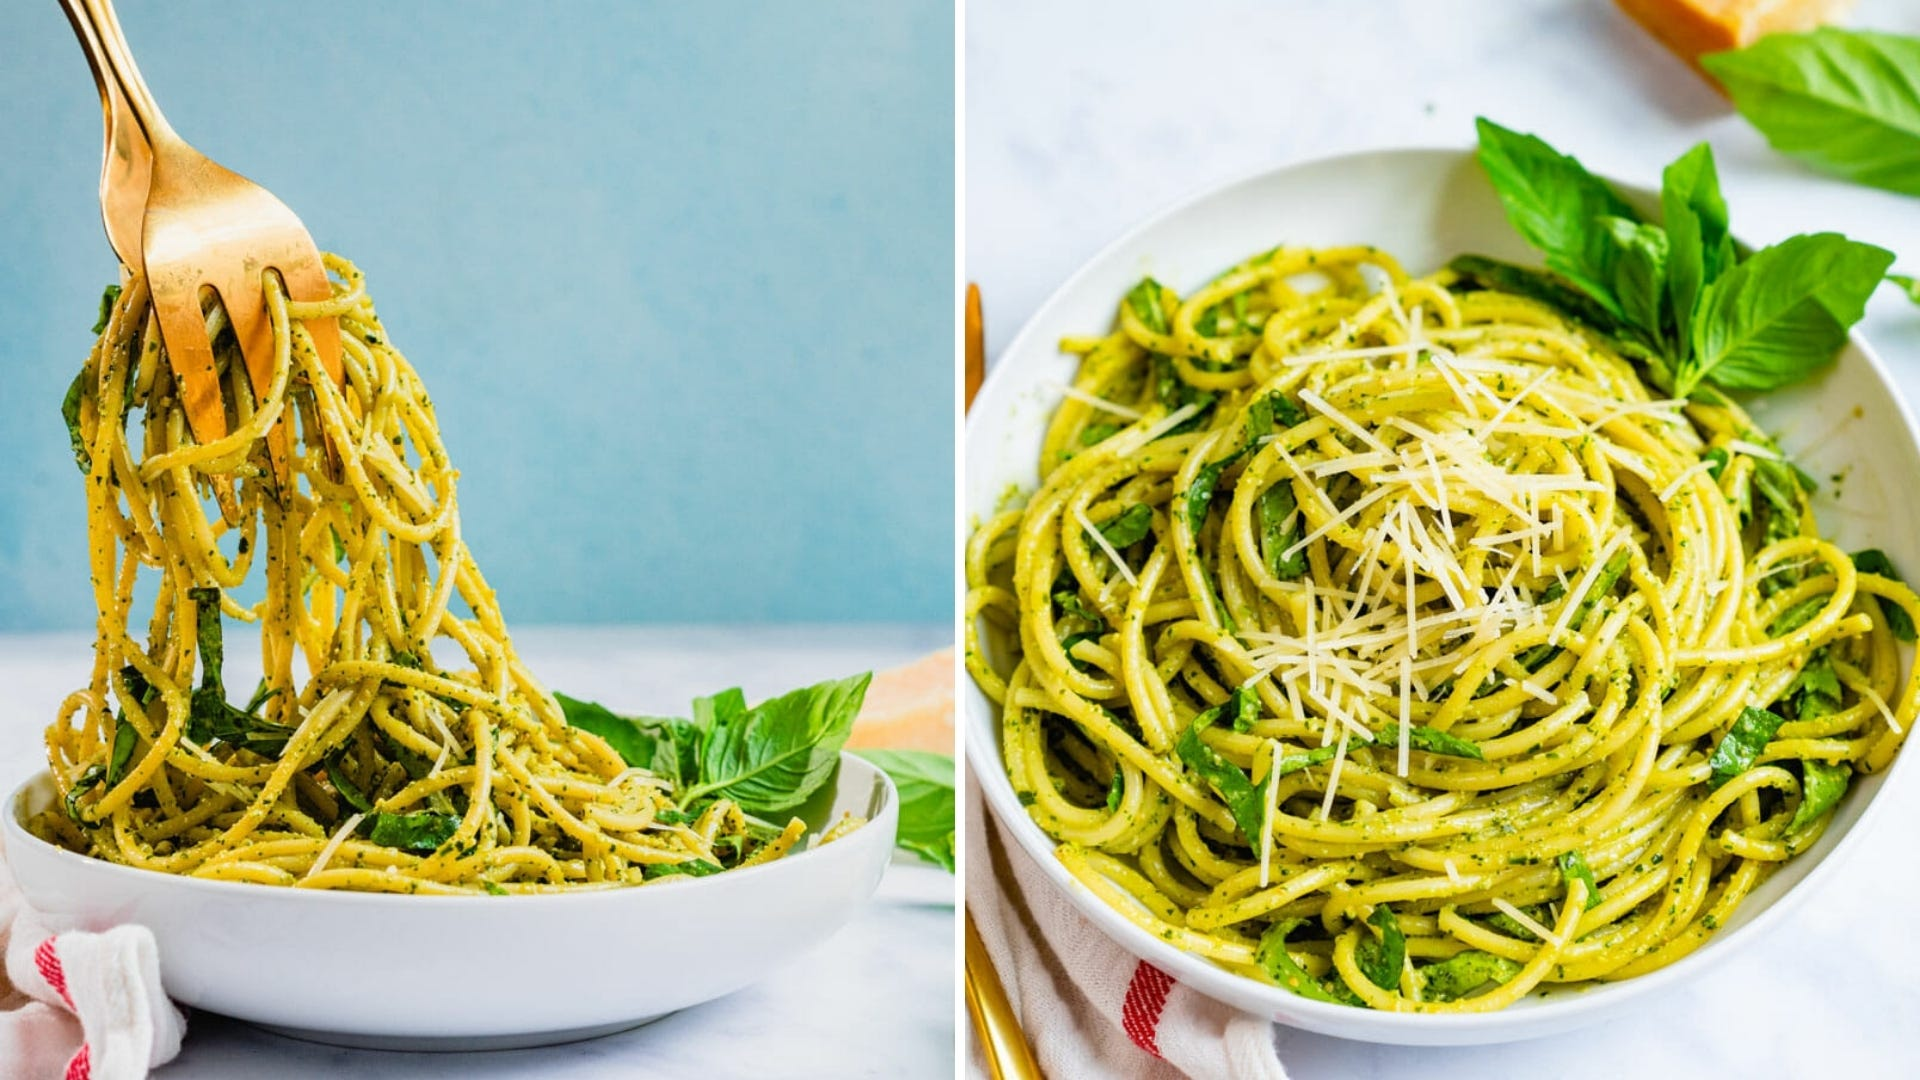 Someone pulls spaghetti out of a bowl with tongs; A bowl of pesto covered spaghetti.